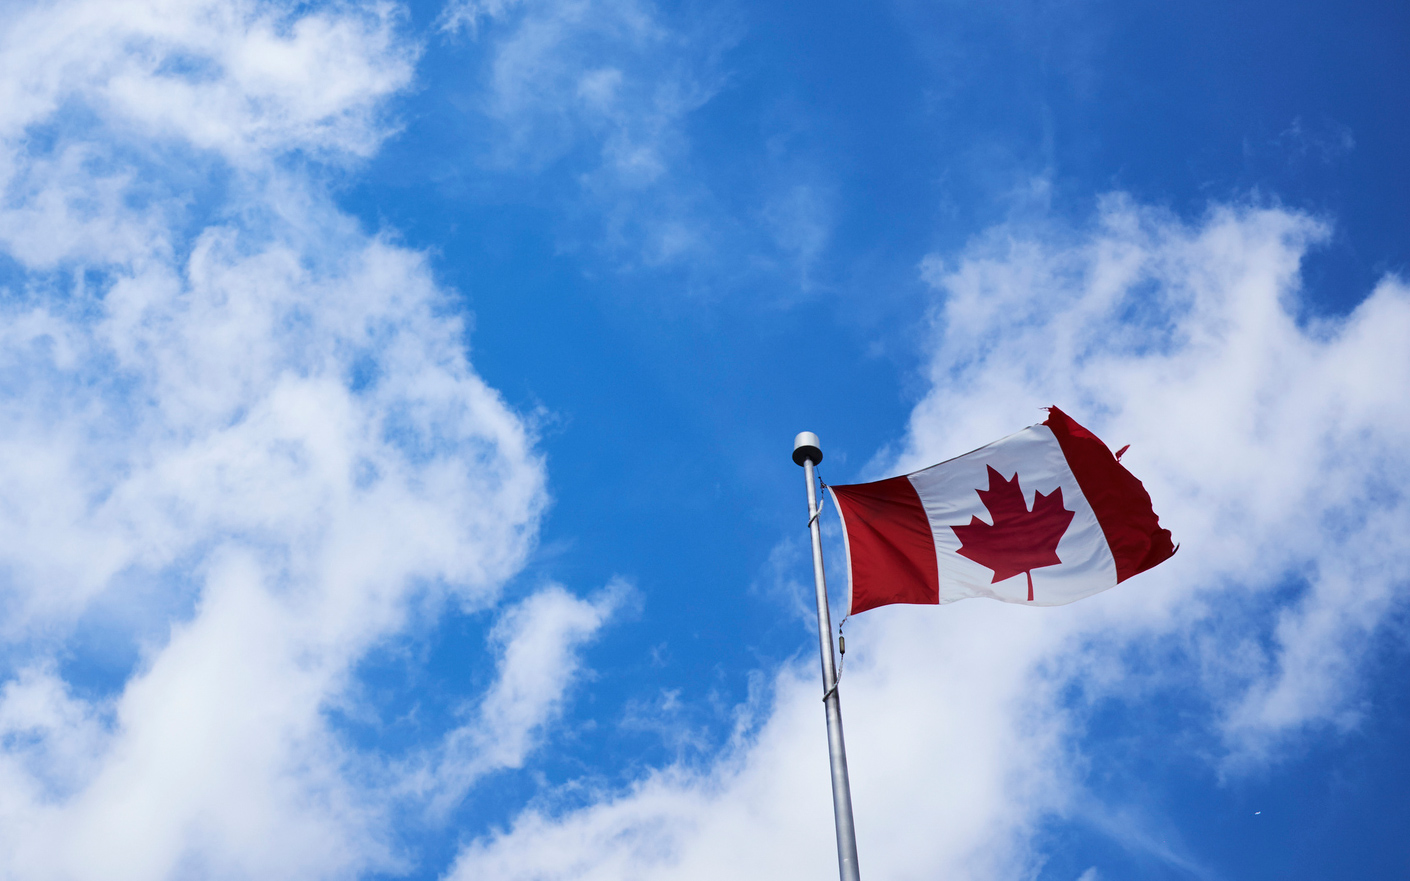 July 1, 2017 marks Canada's 150th anniversary.